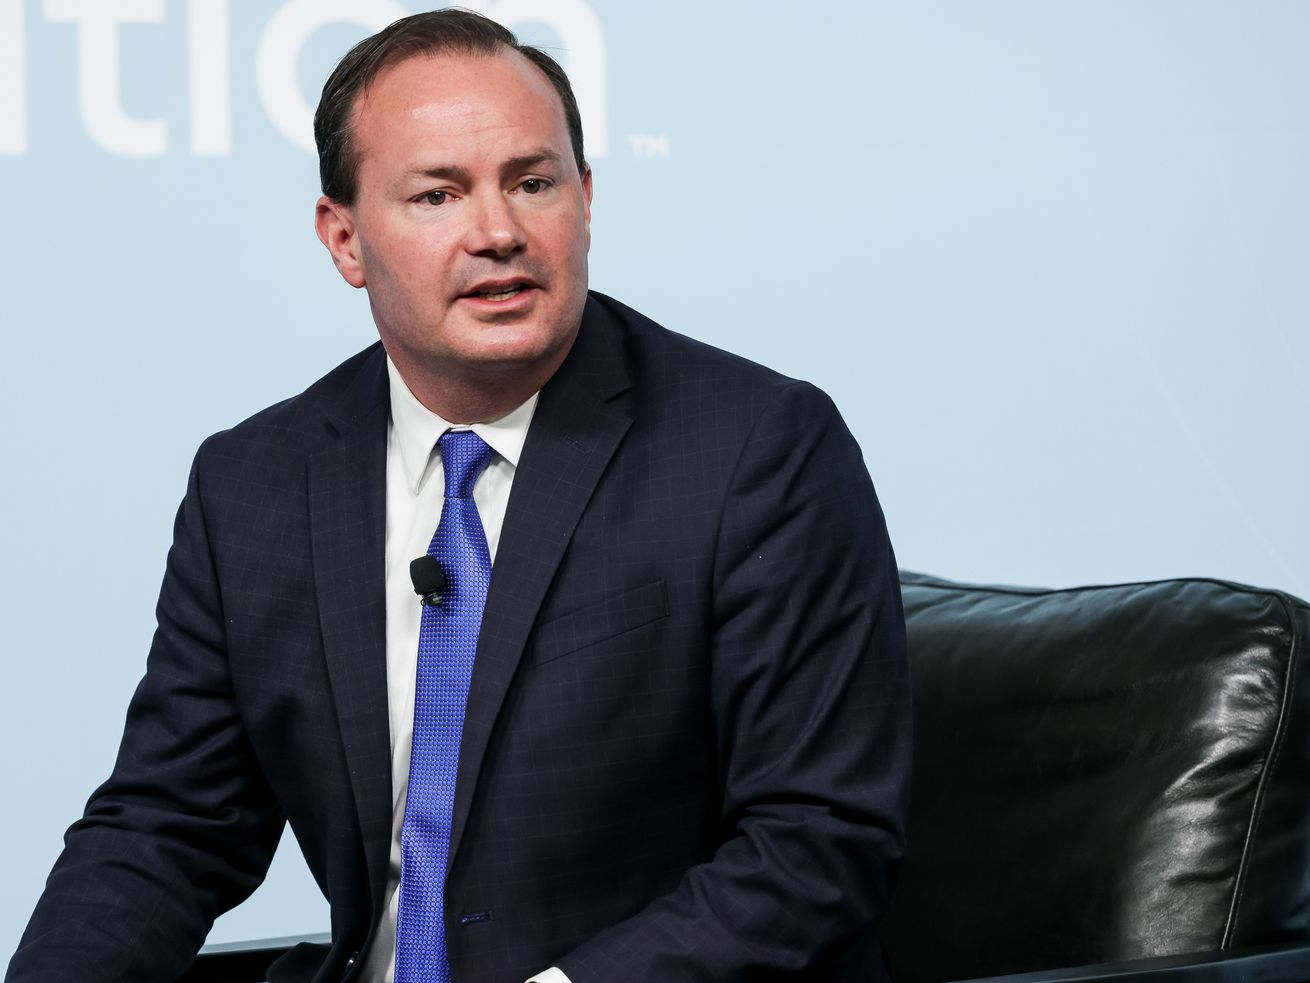 Sen. Mike Lee, R-Utah, speaks at the Human Trafficking Policy and Education Summit at the Malouf Foundation.